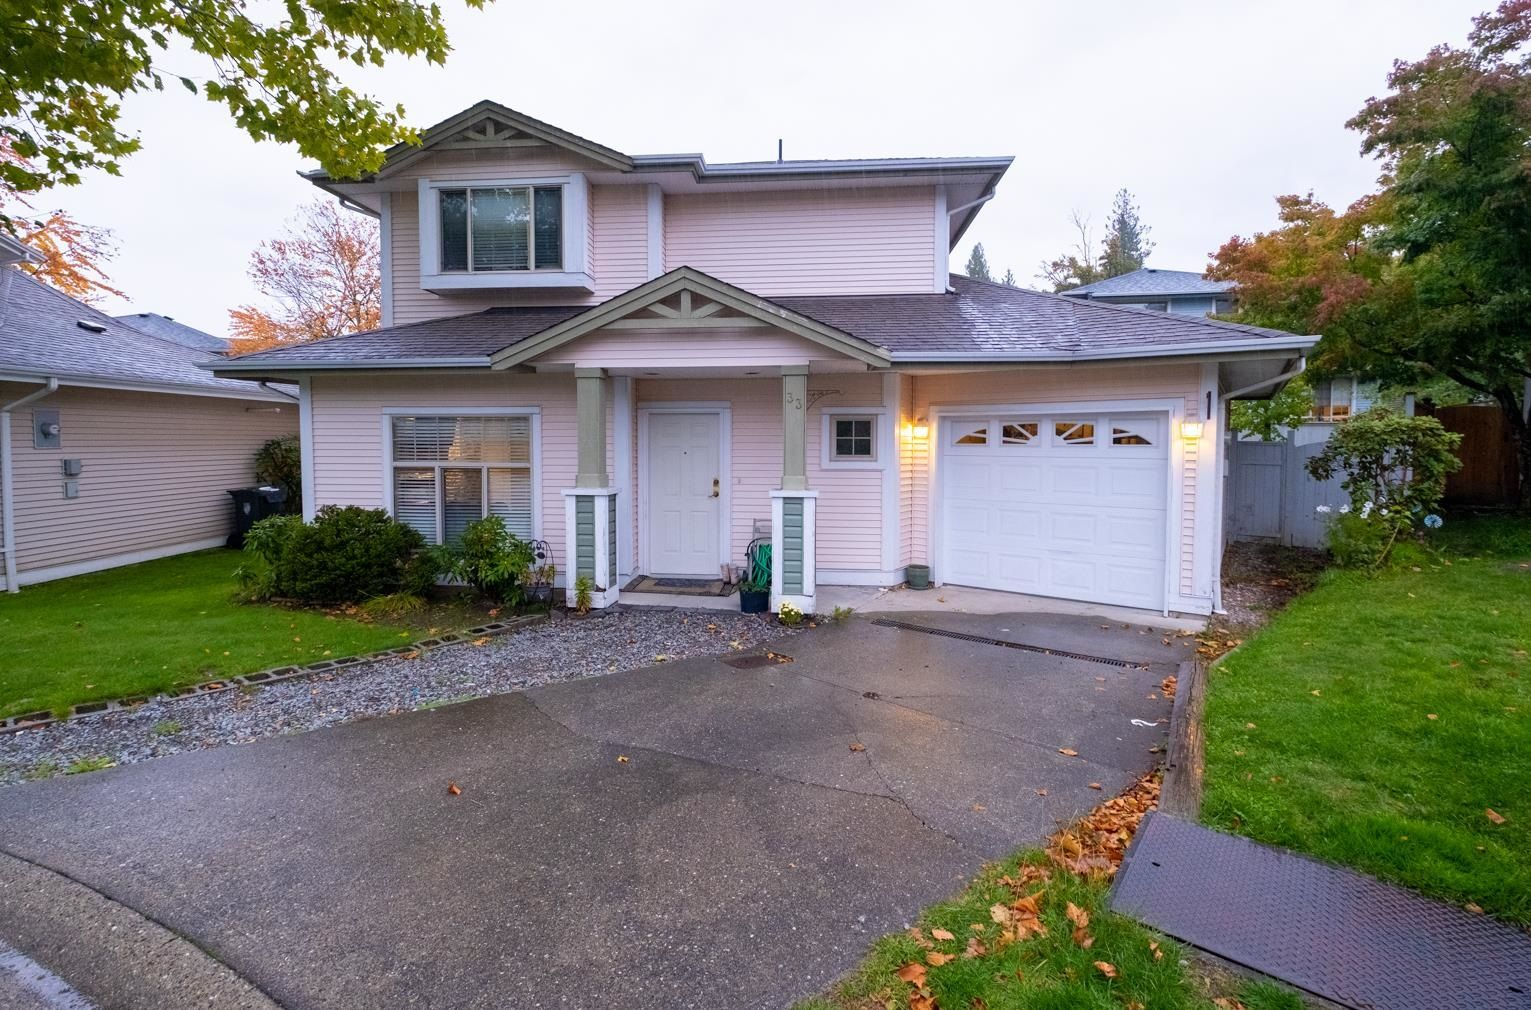 """Main Photo: 33 8675 209 Street in Langley: Walnut Grove House for sale in """"THE SYCAMORES"""" : MLS®# R2625315"""